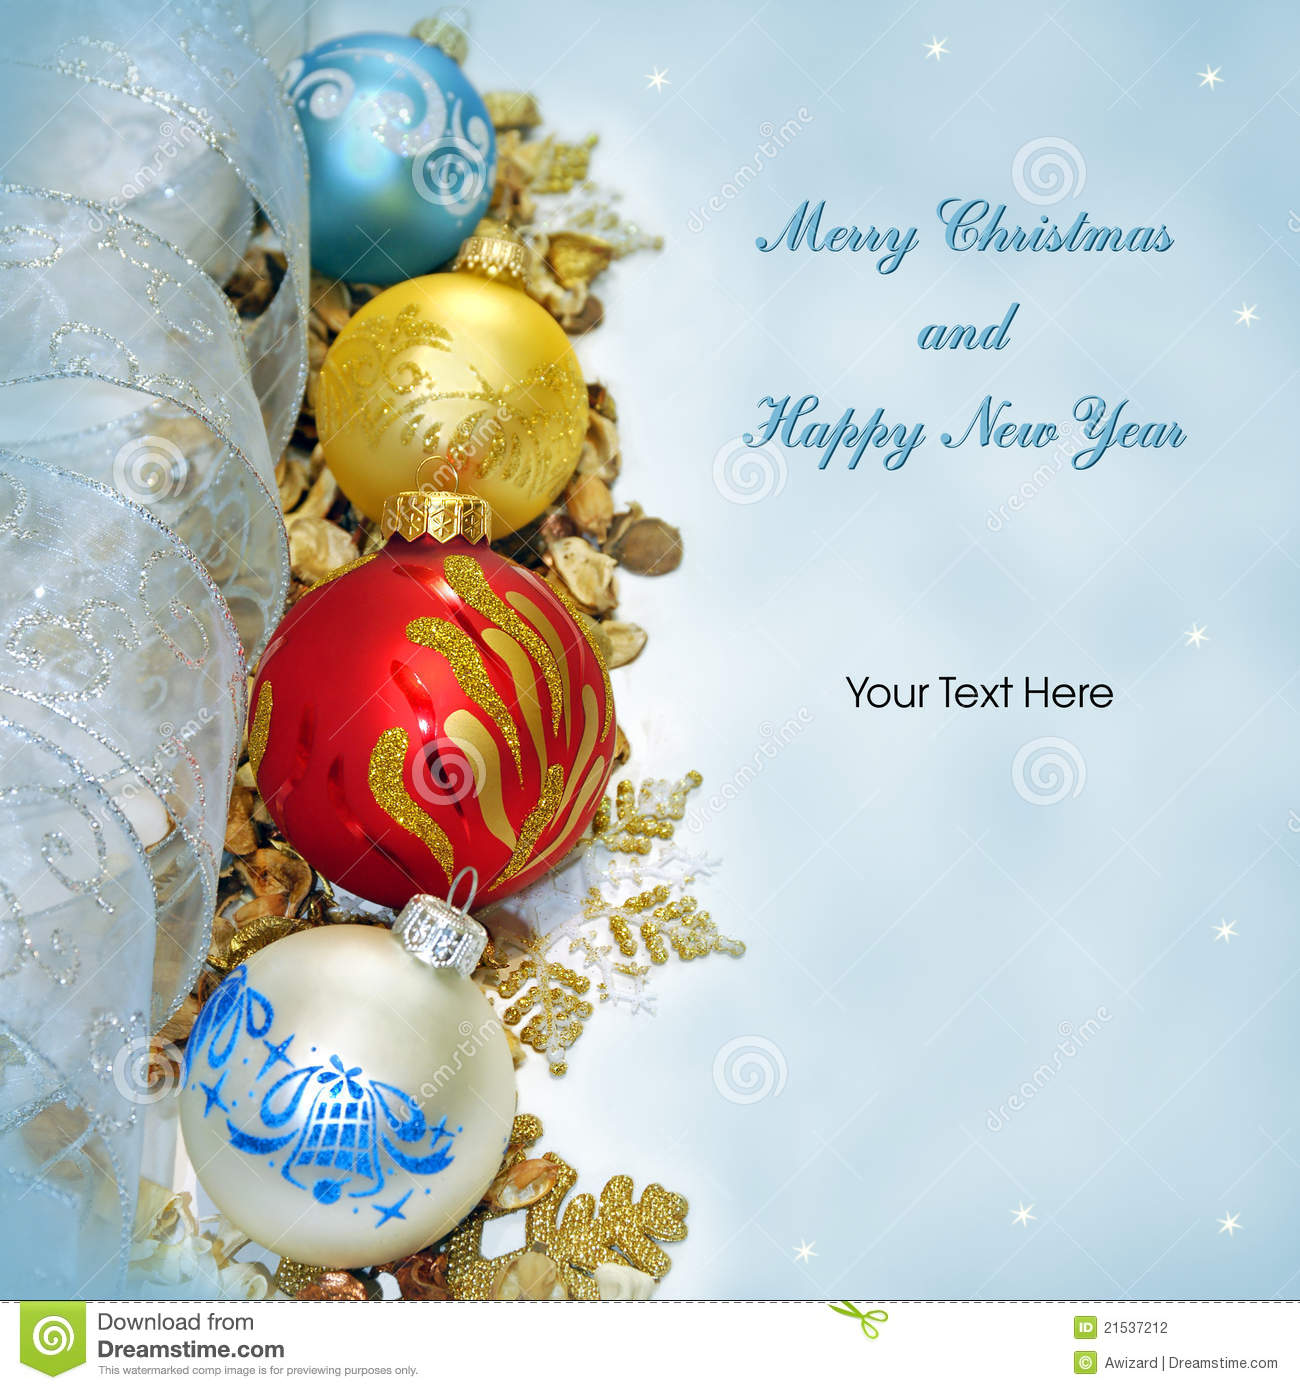 Merry Christmas And Happy New Year Greeting Card Stock Photo Image